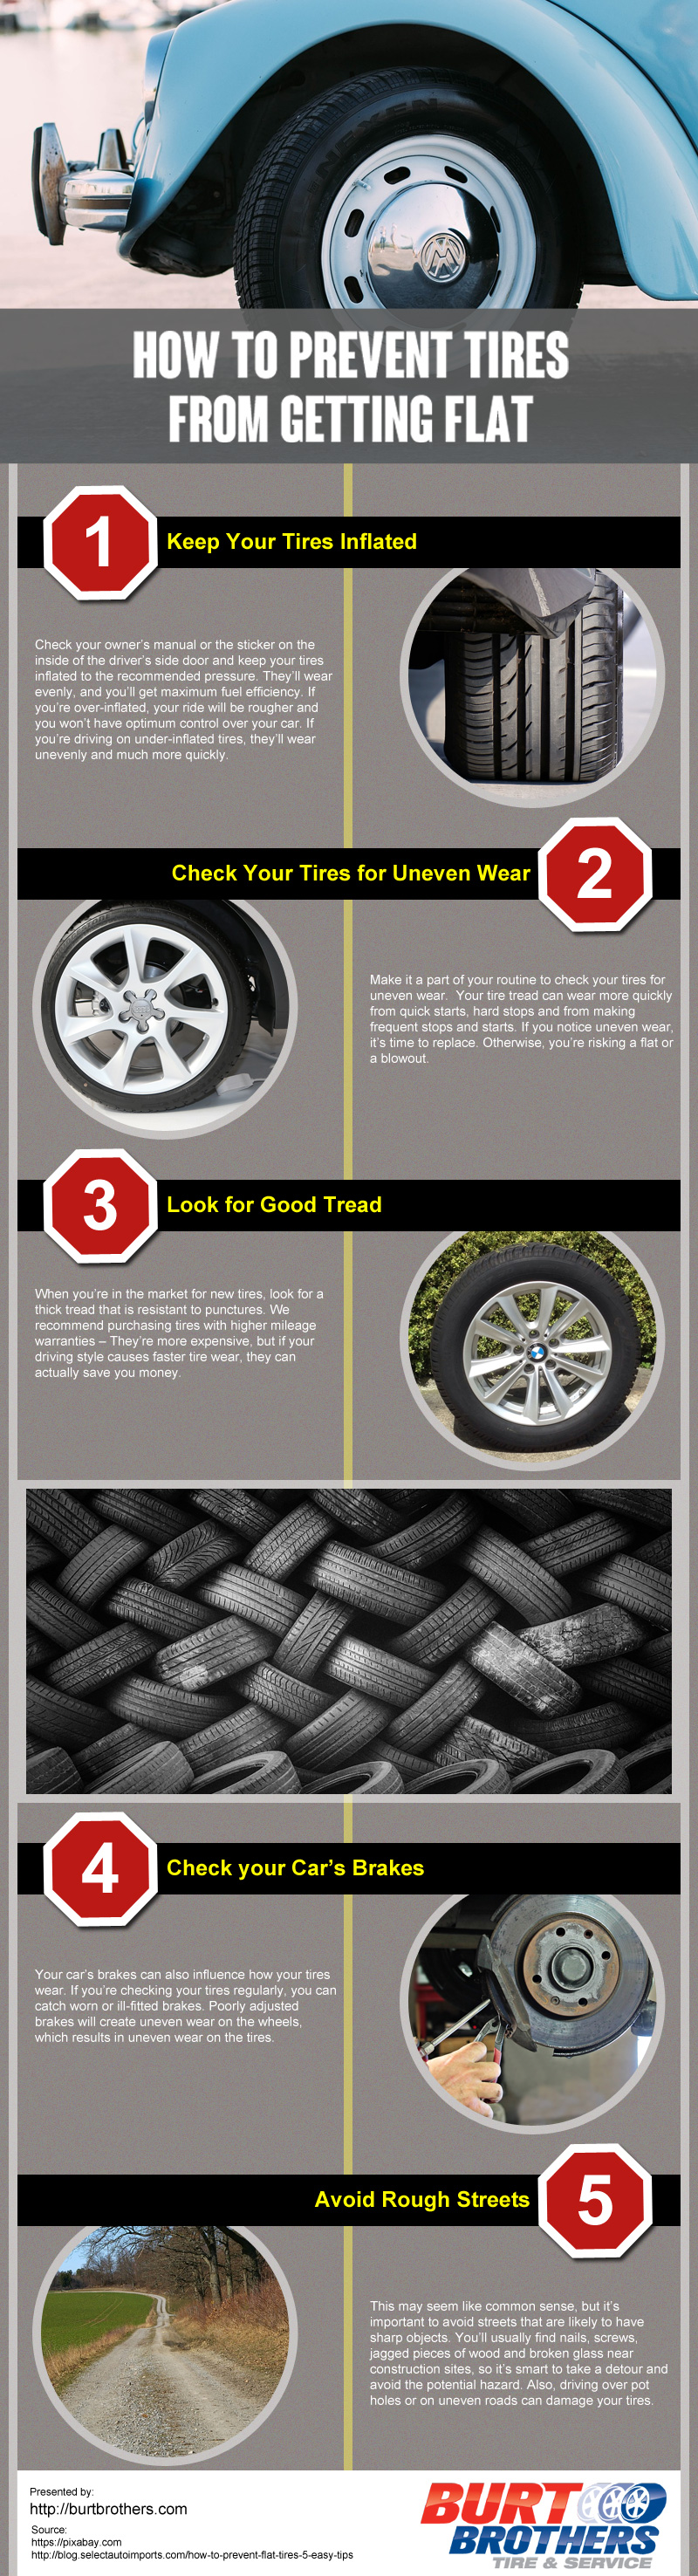 How to Prevent Tires From Getting Flat [infographic]